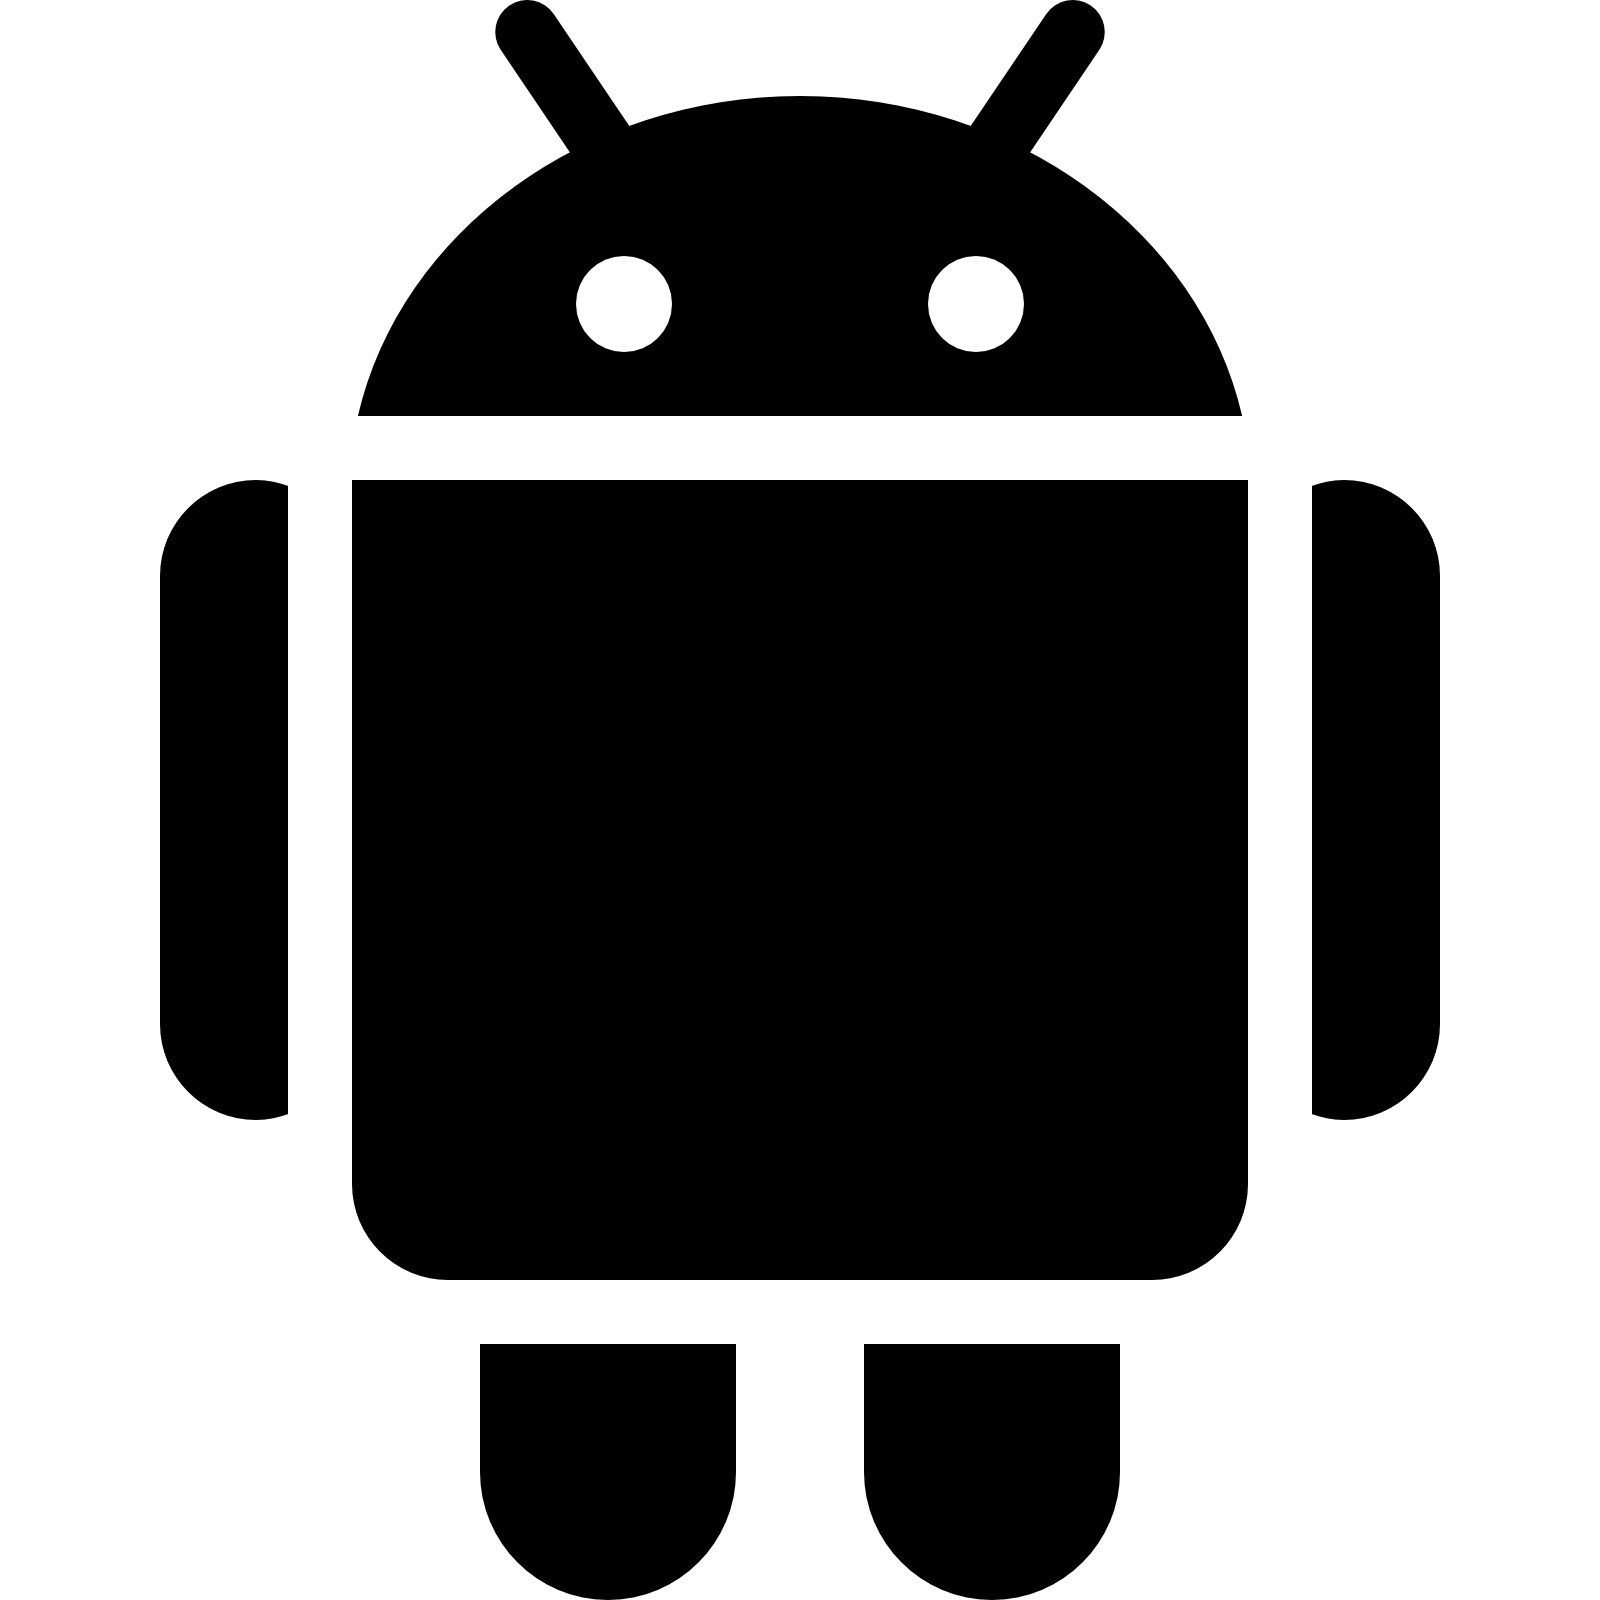 Android OS Filled Icon.